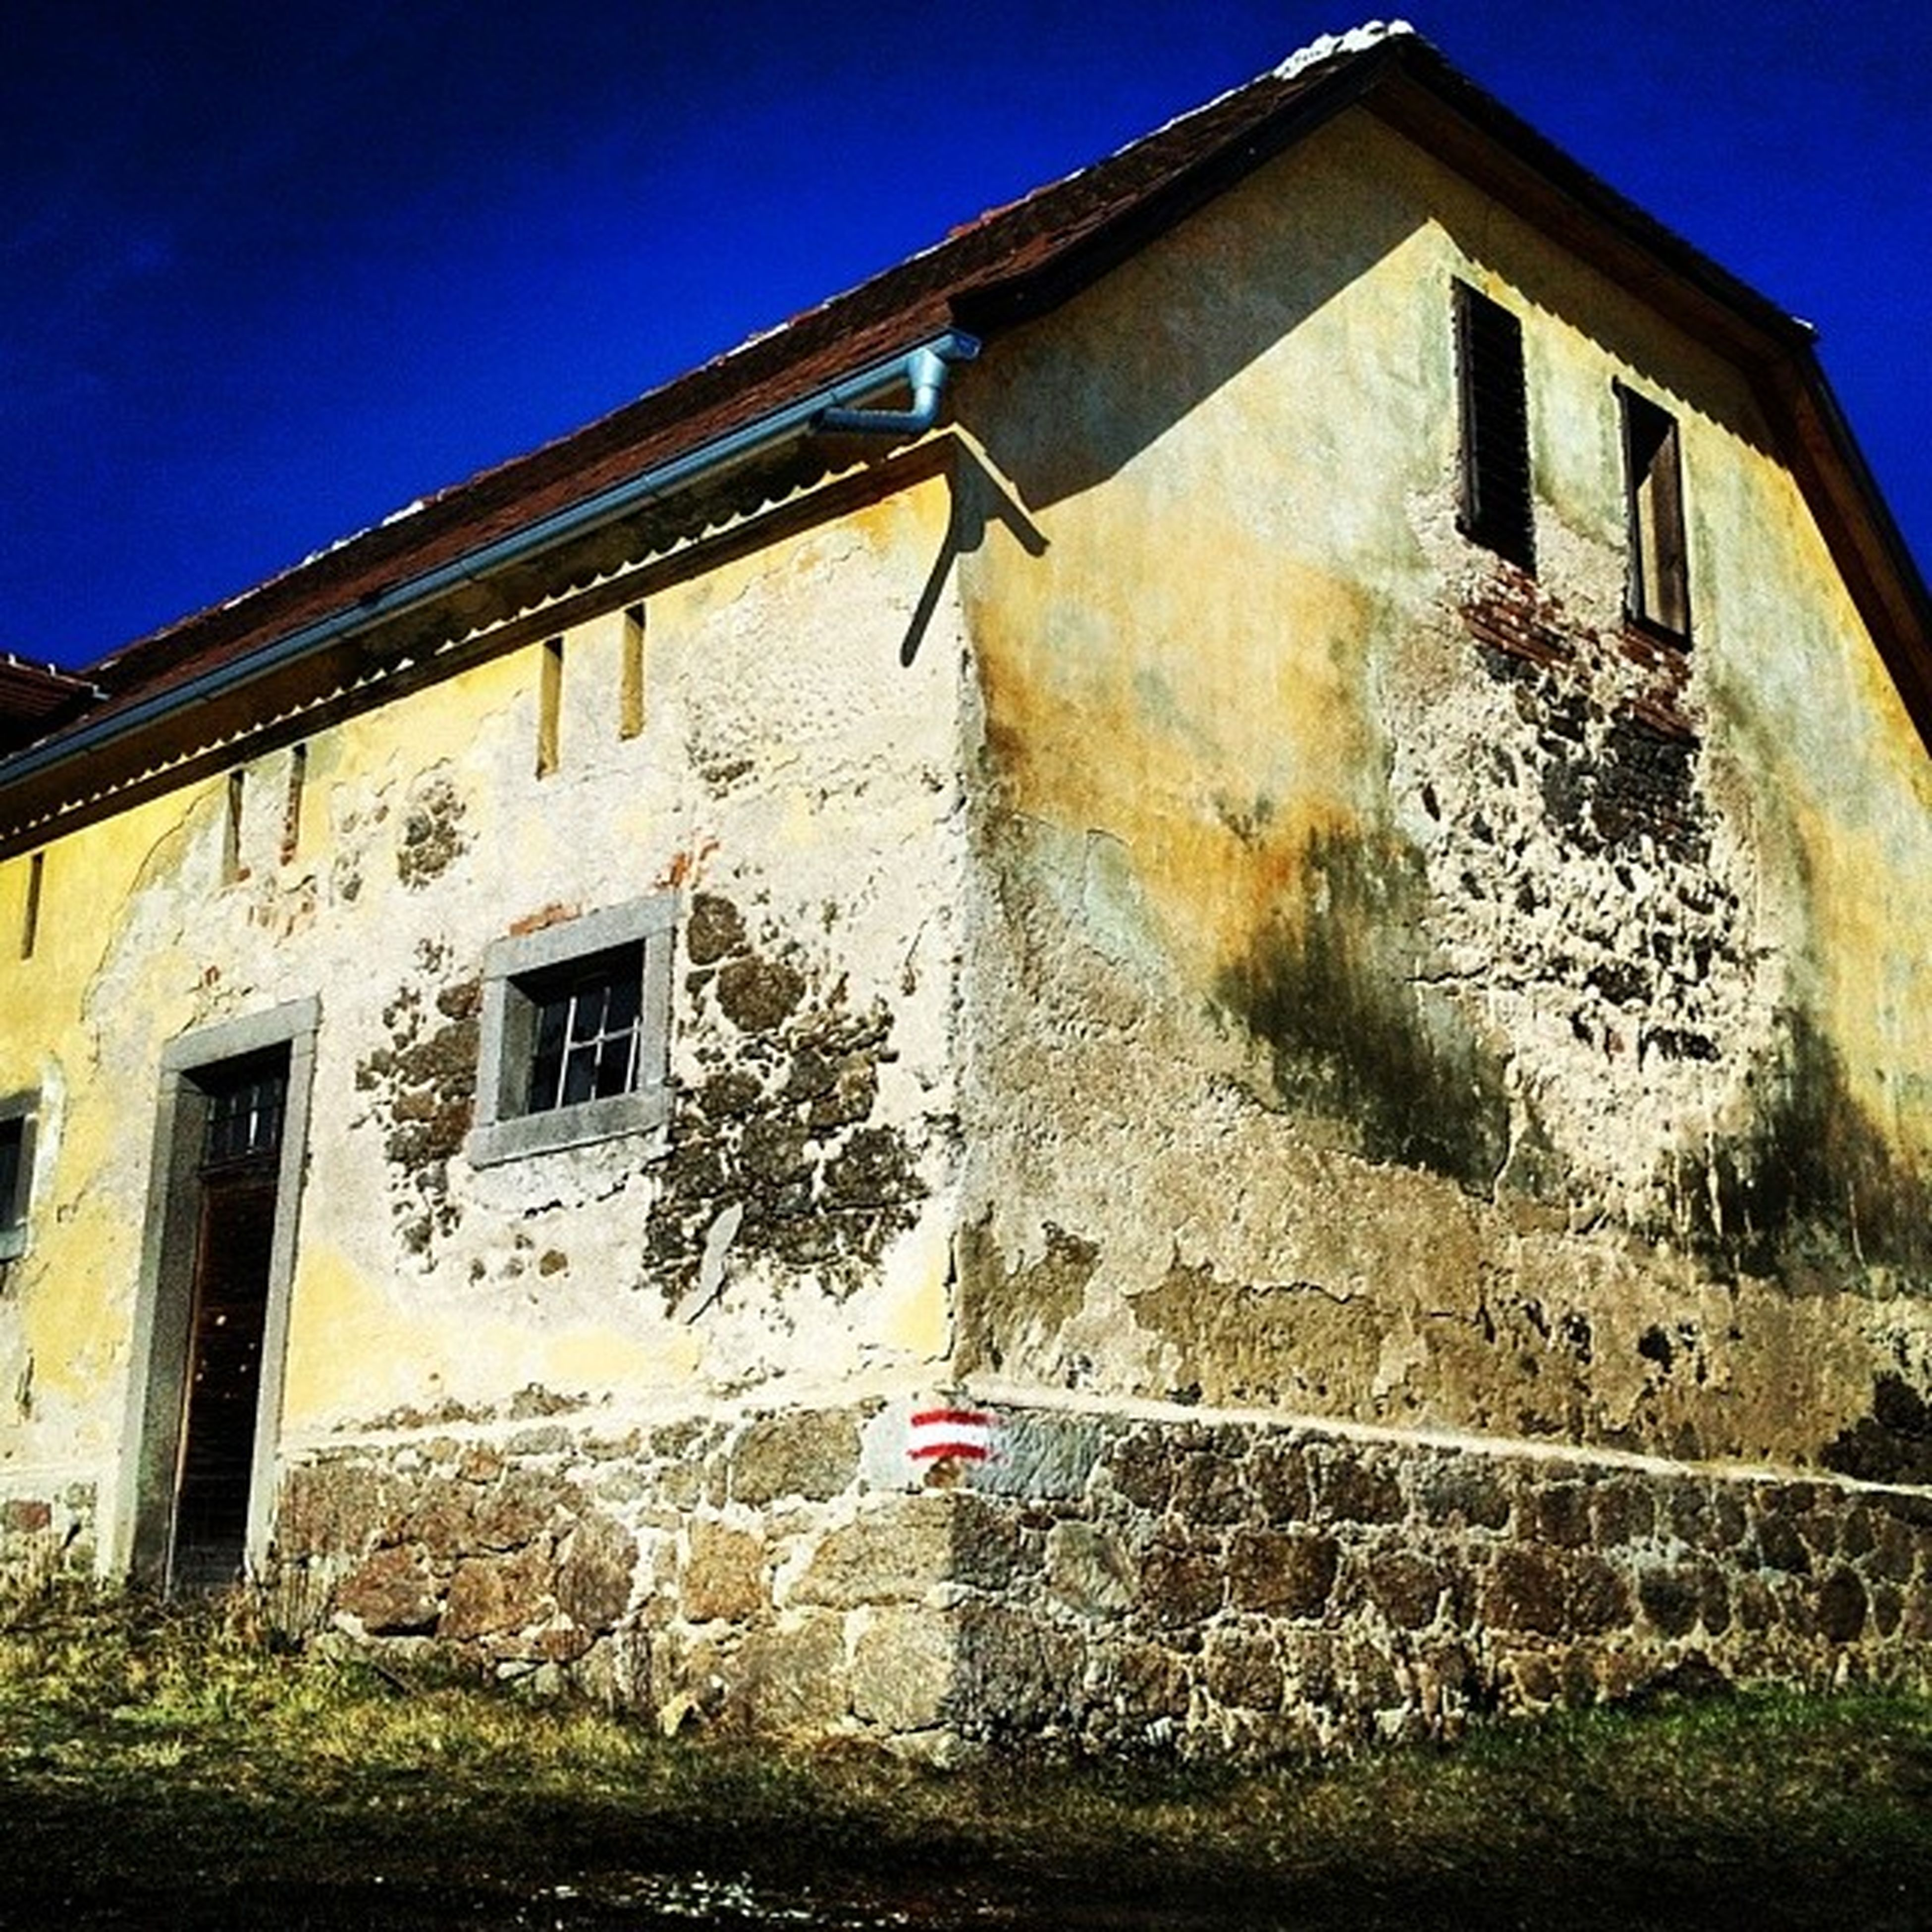 building exterior, architecture, built structure, low angle view, window, house, old, abandoned, residential structure, clear sky, weathered, blue, brick wall, obsolete, building, damaged, residential building, wall - building feature, run-down, day